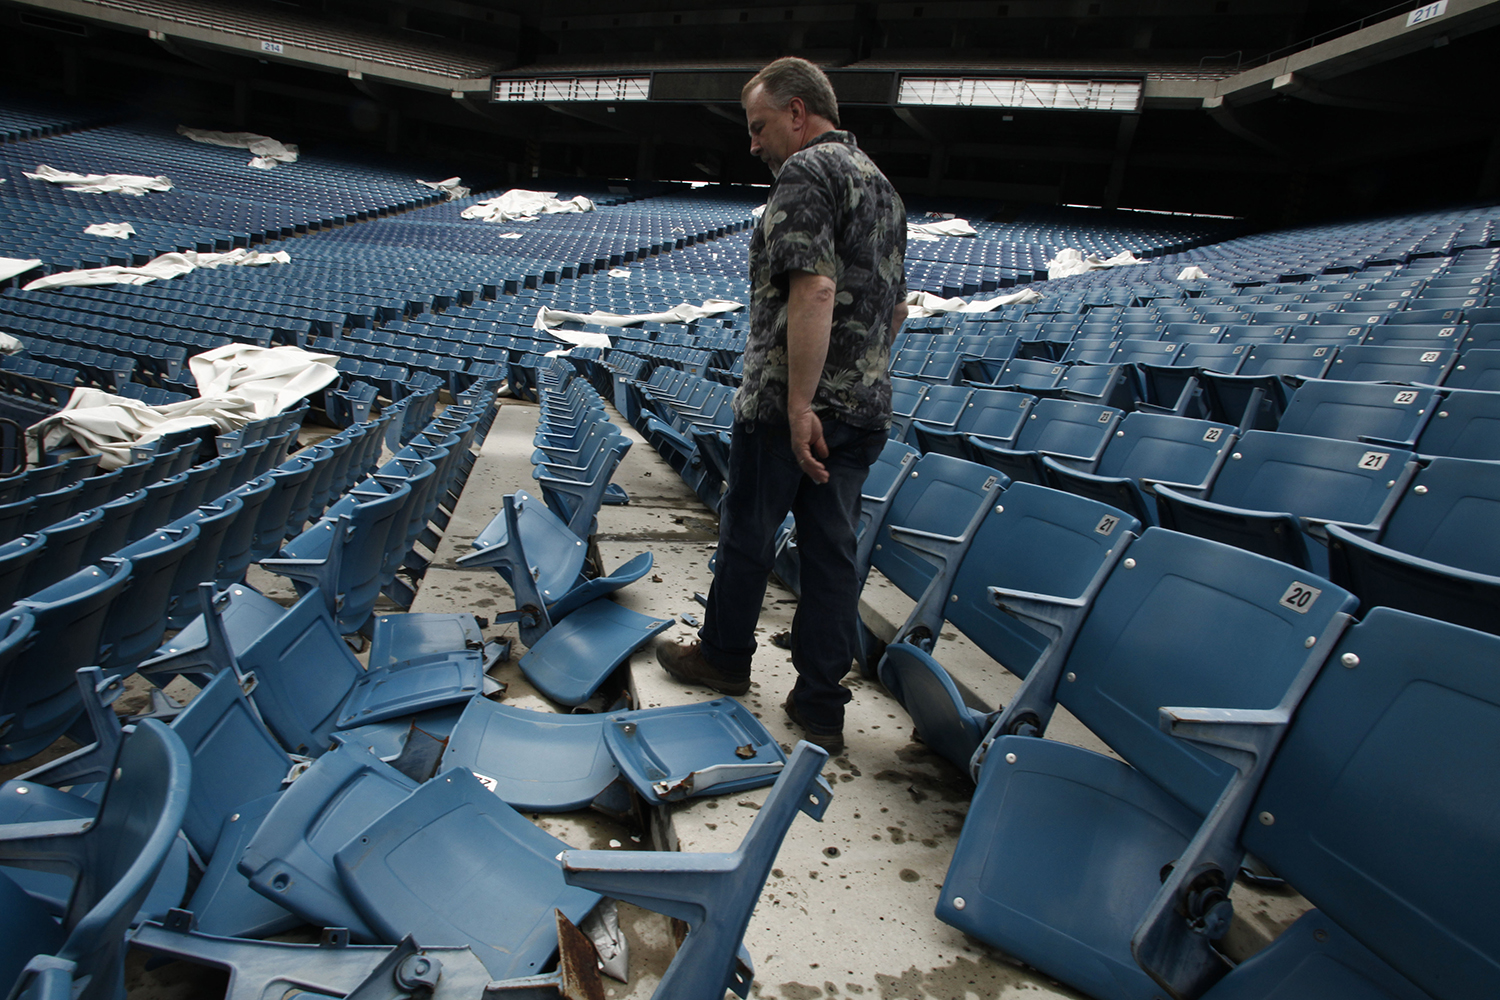 Jim Passeno, 58, from Commerce Twp. carefully steps around a damaged seating section at the Pontiac Silverdome on Friday, May 9, 2014 in Pontiac. Tim Galloway for Al Jazeera America